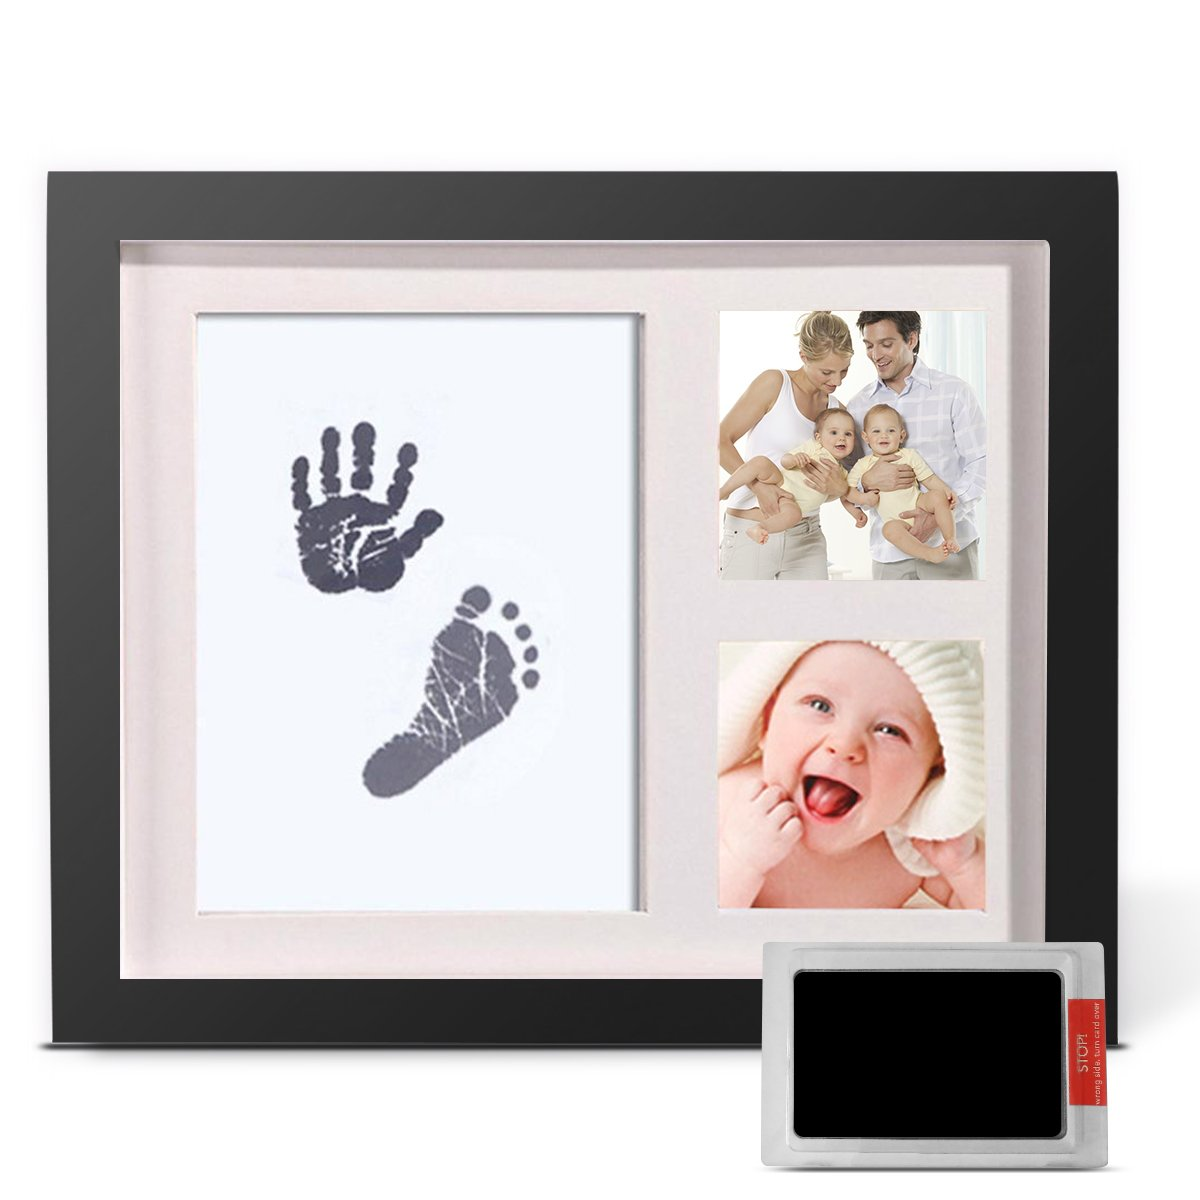 Baby Handprint and Footprint Photo Frame Kit by TopSuccess Without Ink-Touch,Safe and Non-Toxic Ink Print Kit for Baby Babyprints Inkpad Best for Newborn Baby Gifts GM10 (Black)